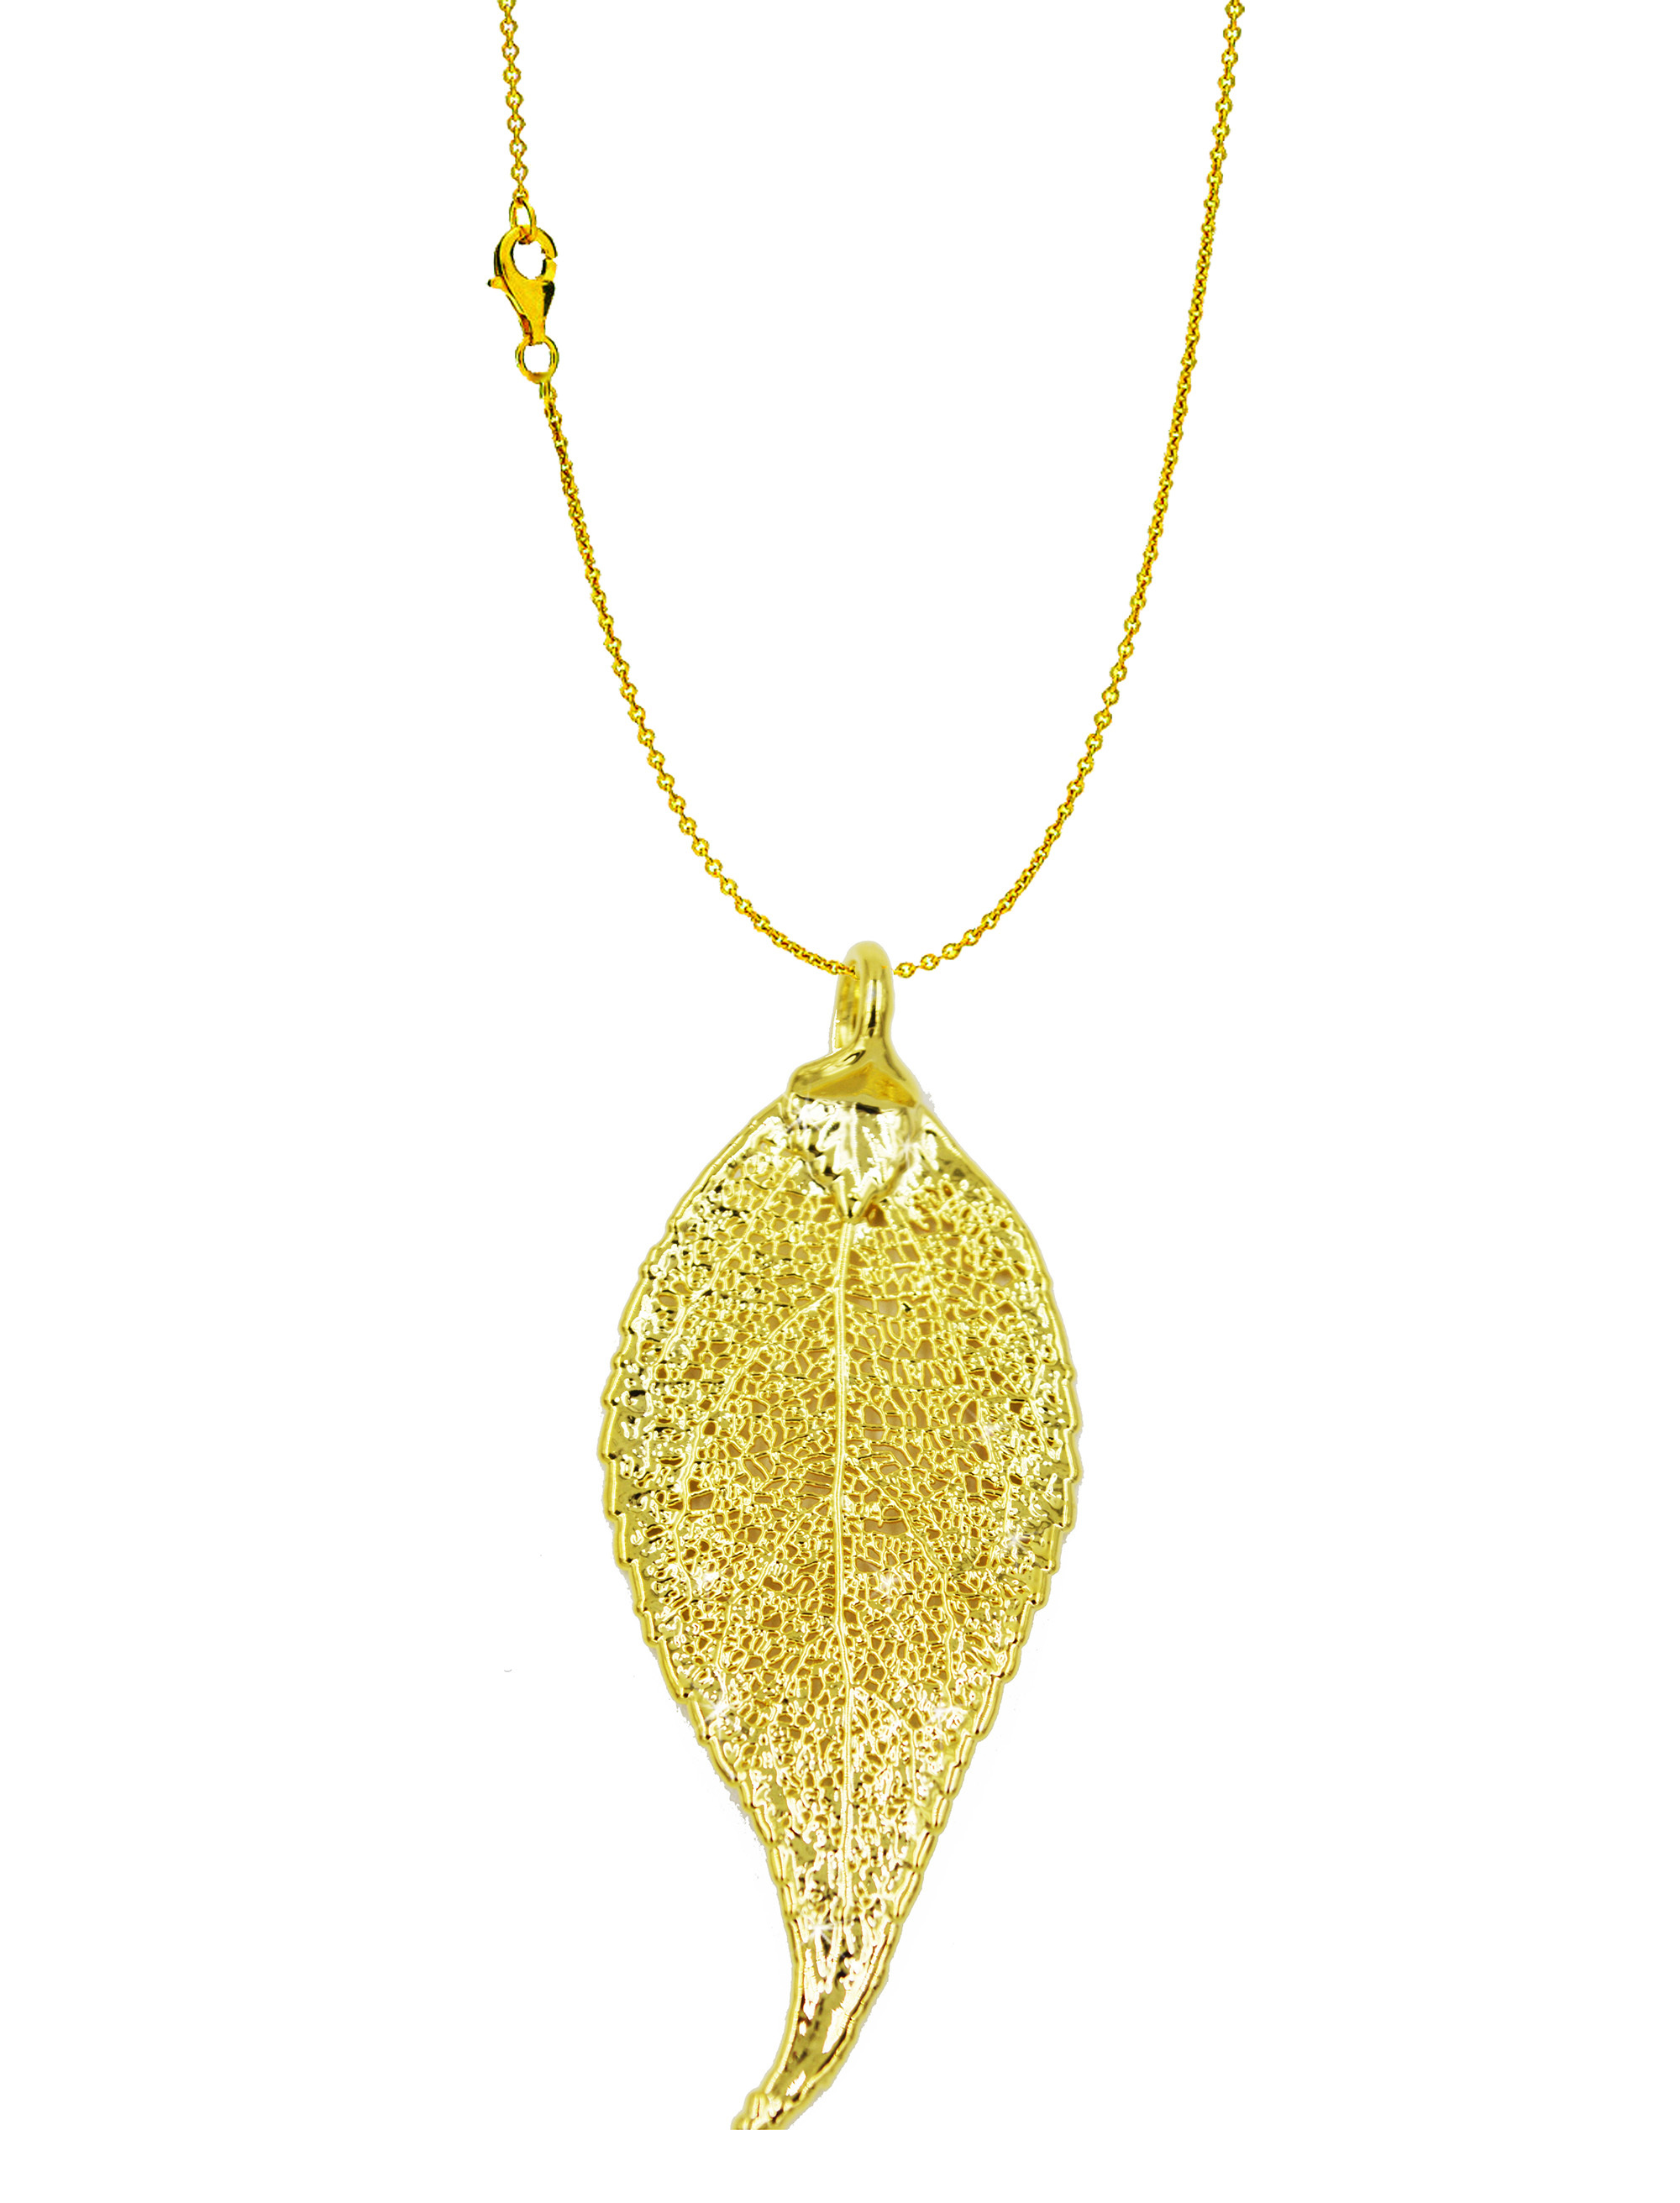 gripoix long byzantine signet necklace gold large poured brass loading pendant glass plated and multi chain